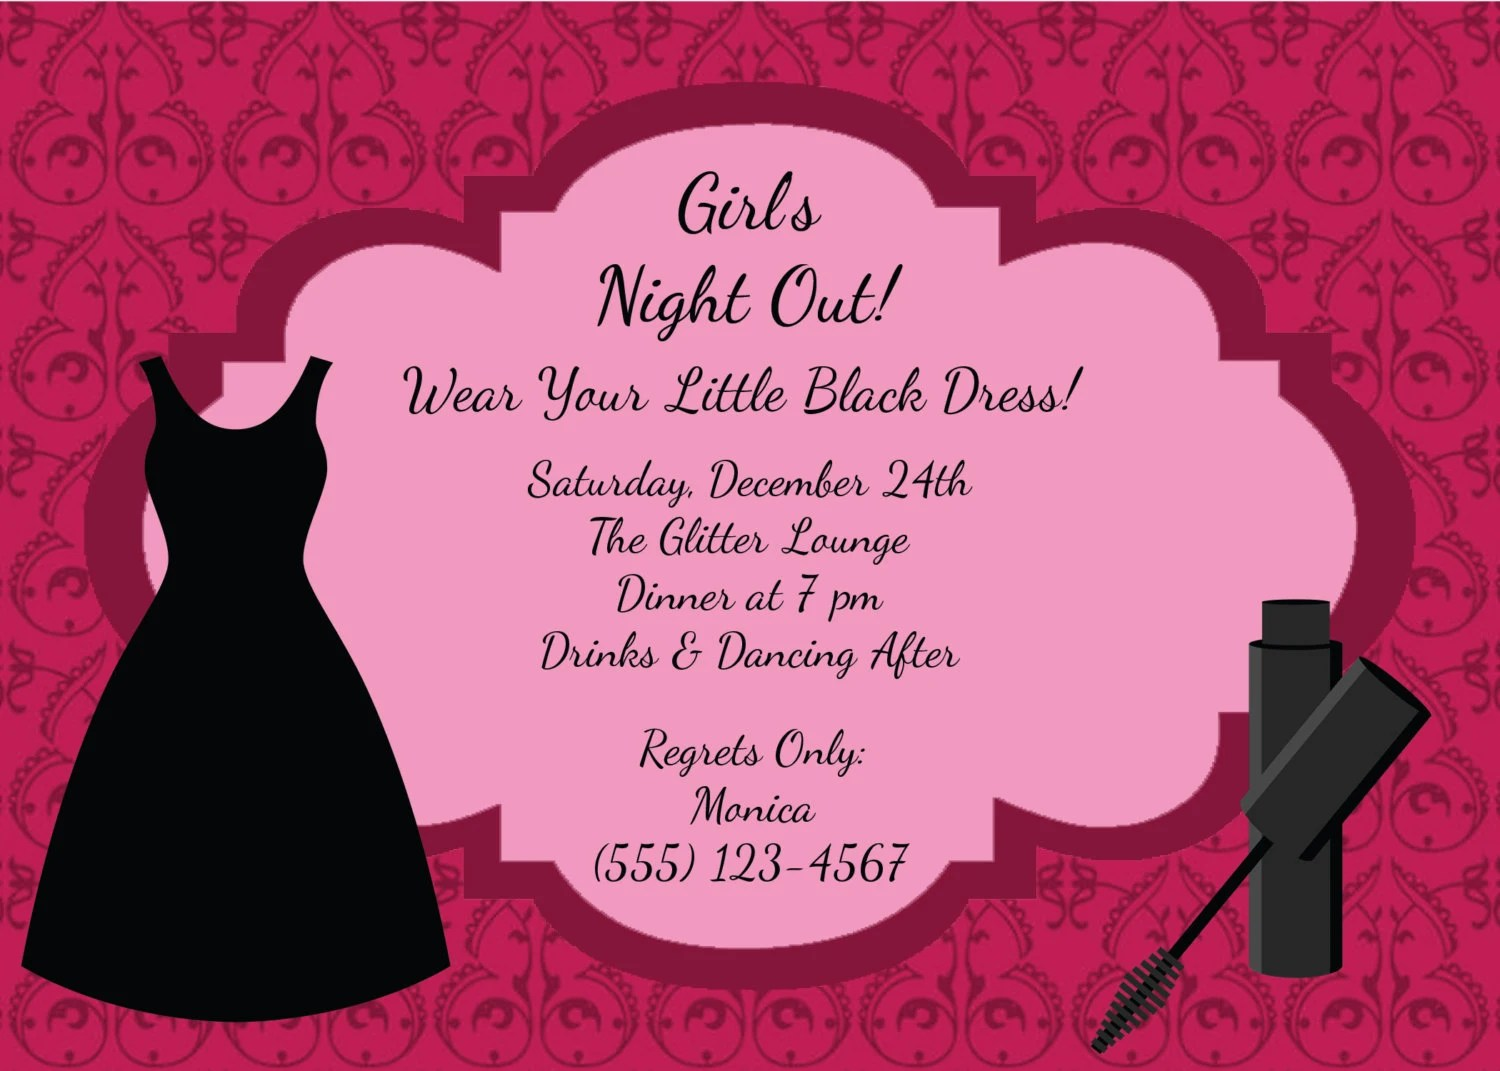 Girls Night Out Invitation Great For Bachelorette Party Diy